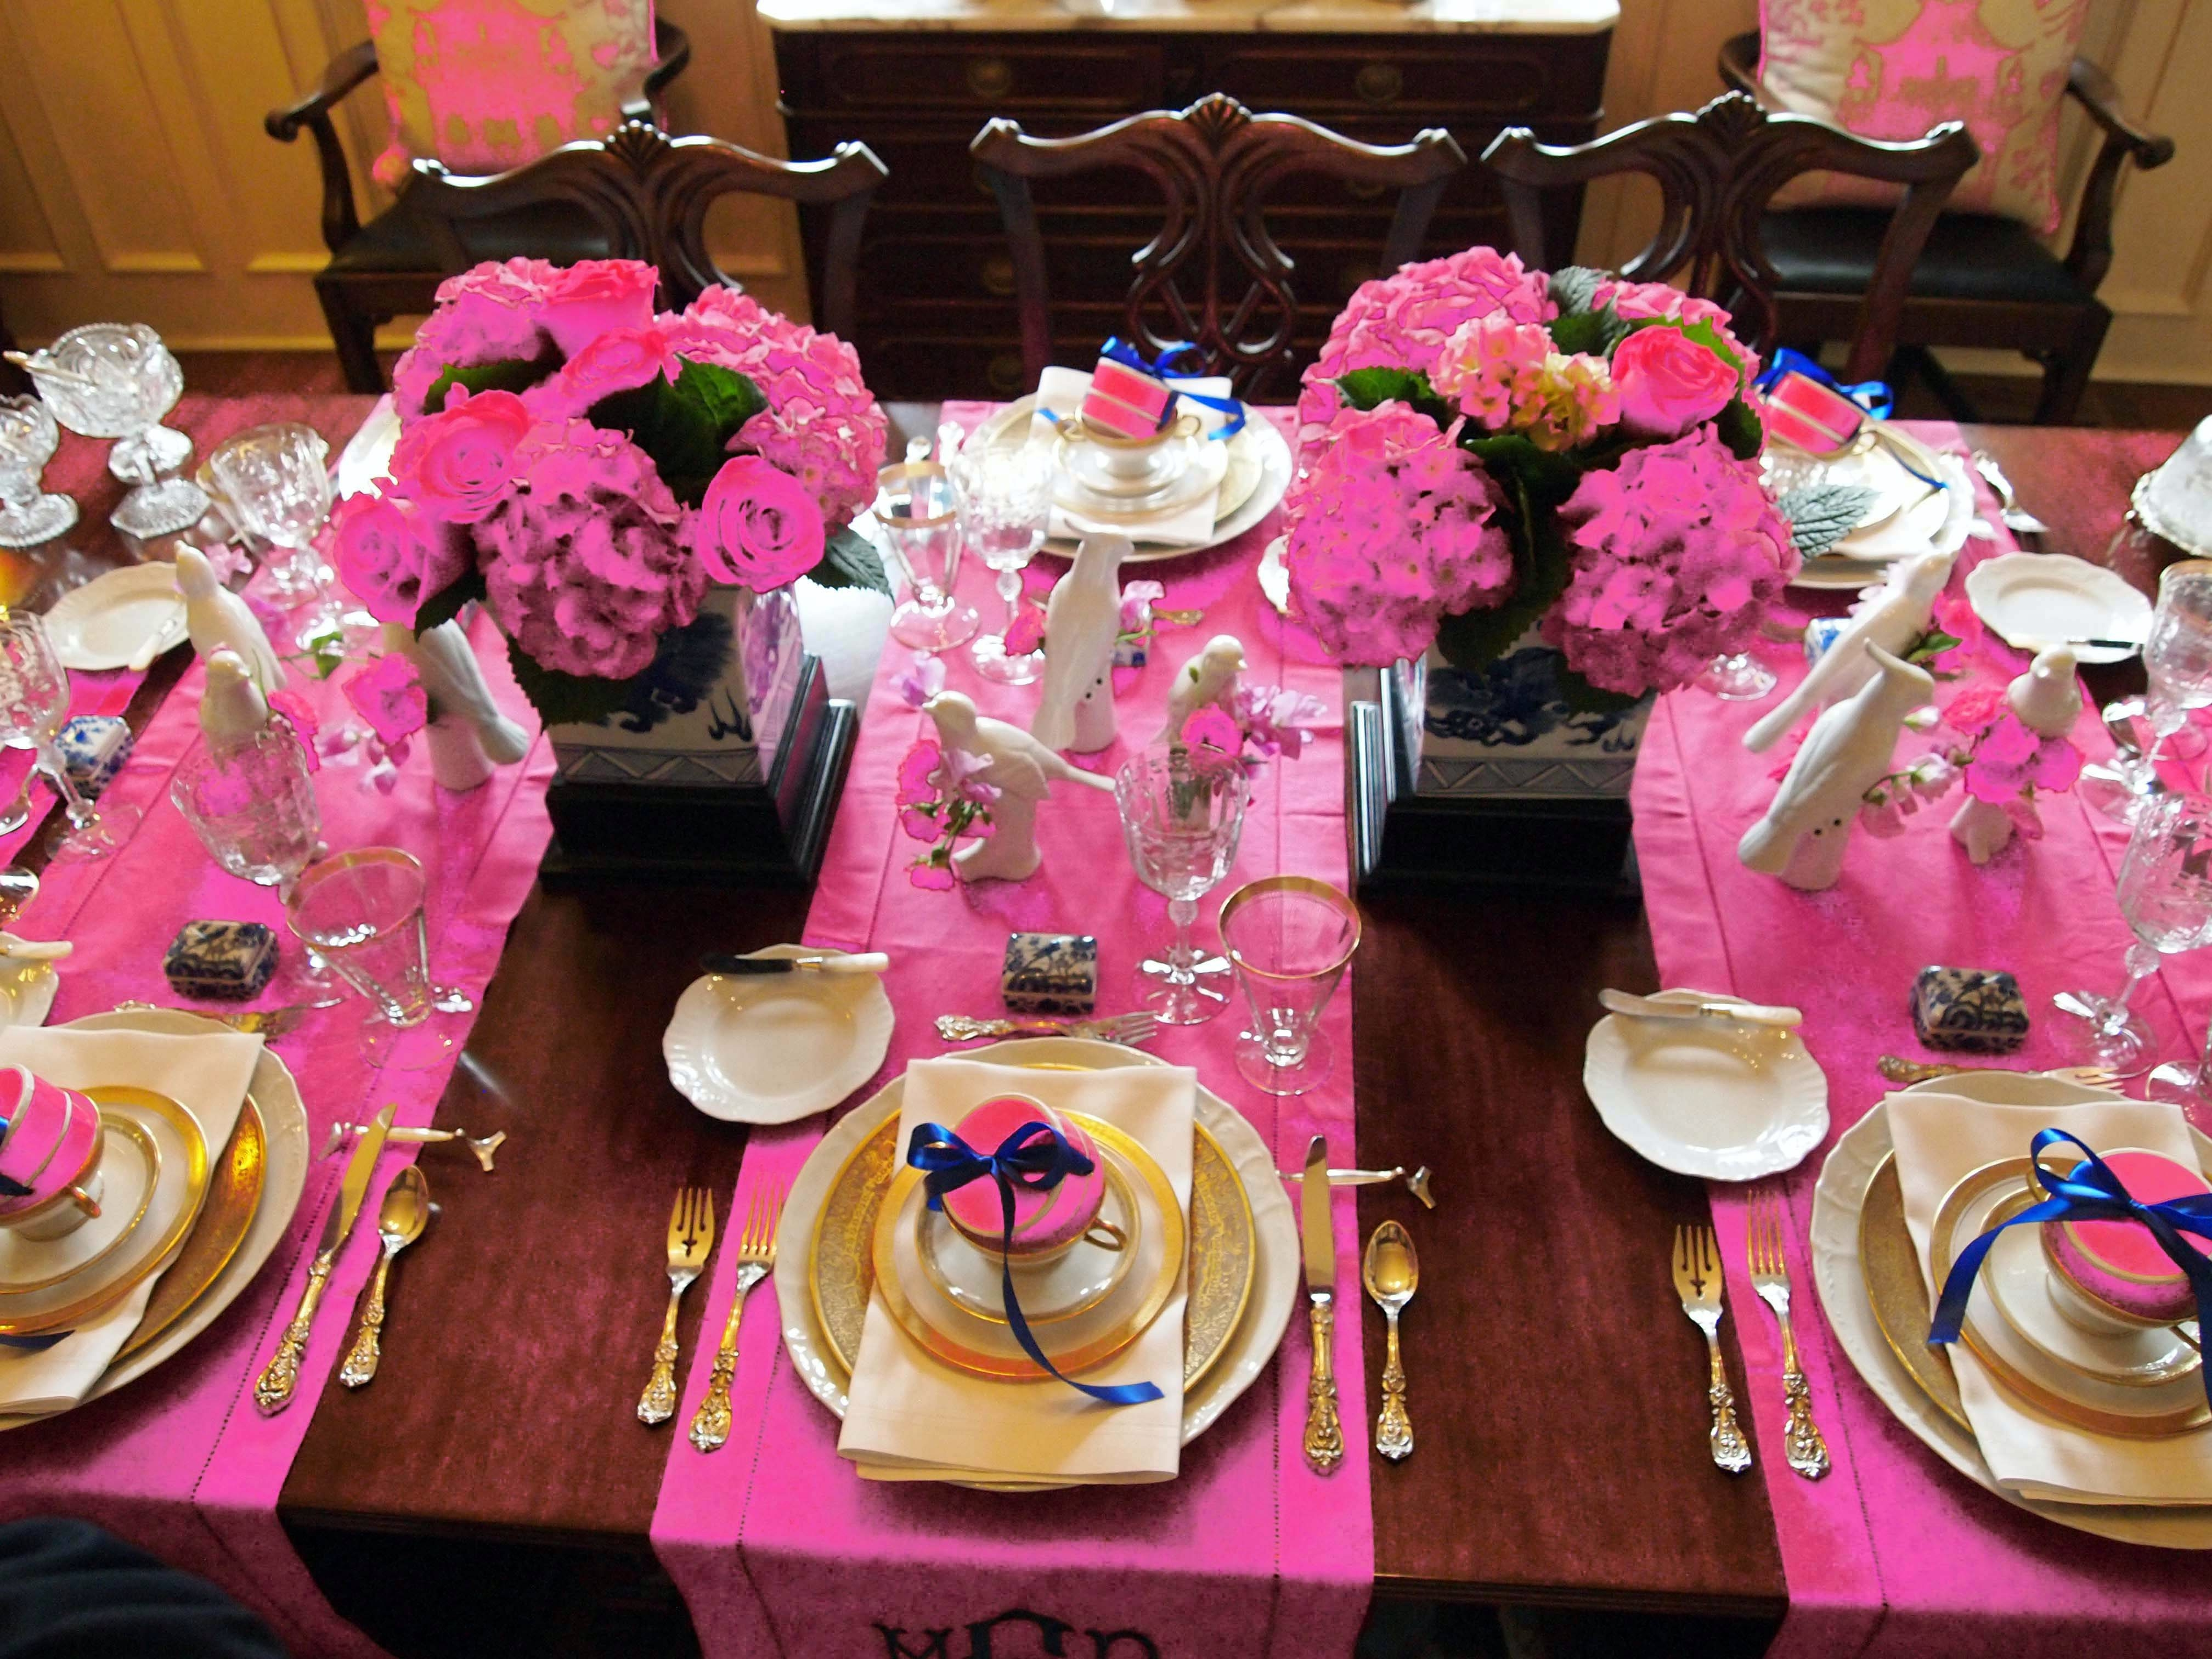 A luncheon table is dressed up with flouncy flowers, white and gold dishes and plenty of pink.